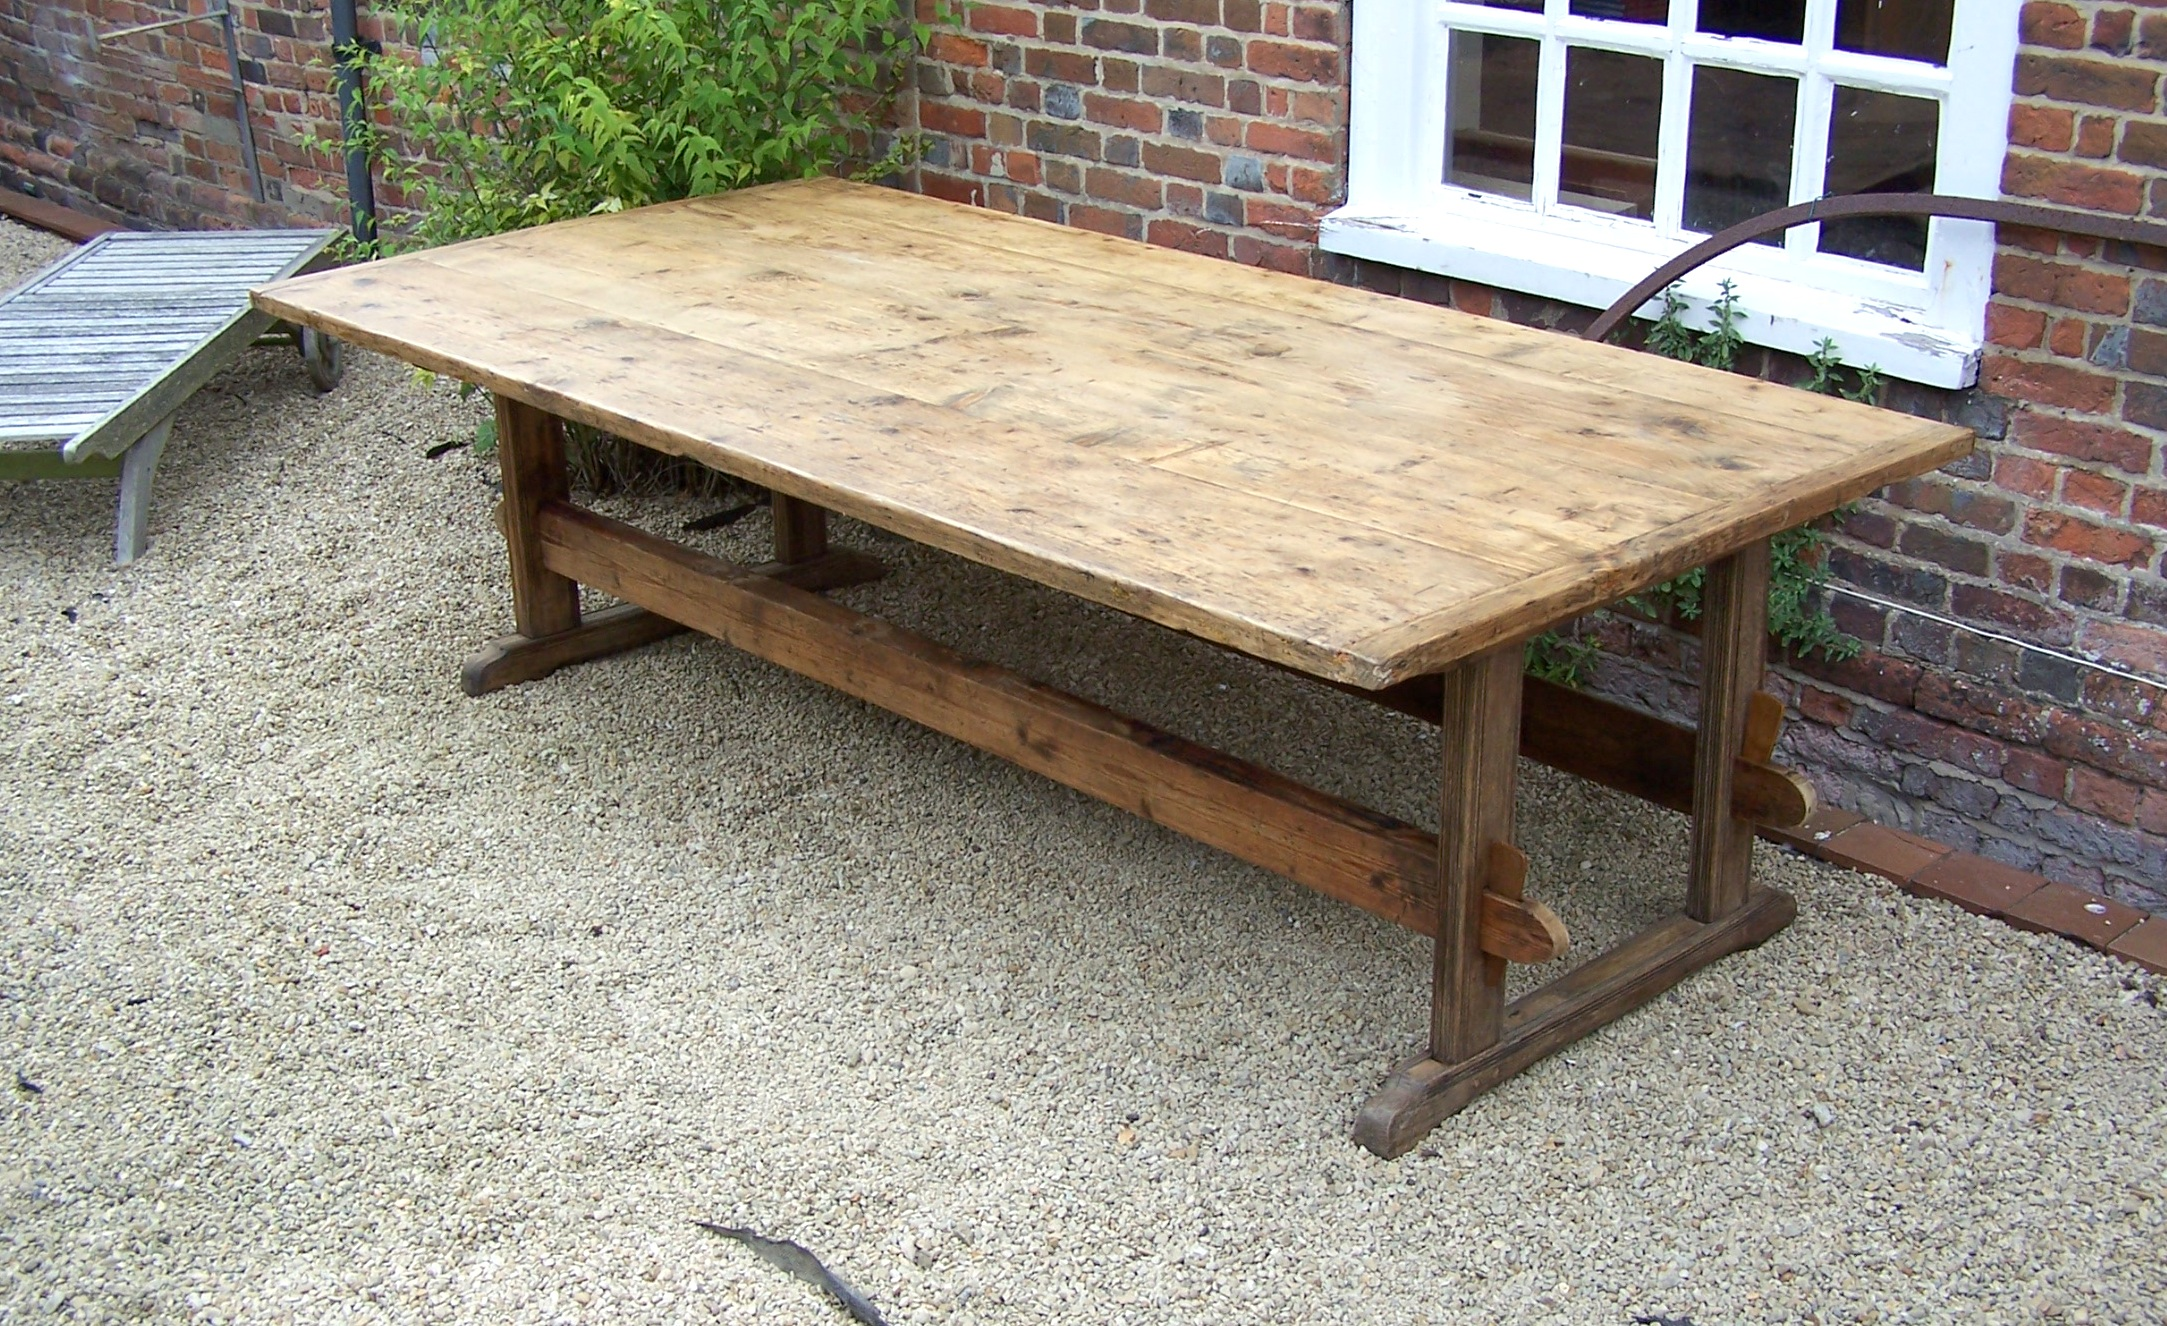 Large Rustic Farm Table Summers Davis Antiques amp Interiors : 2634 Large Farm Table top from www.summersdavisantiques.co.uk size 2167 x 1326 jpeg 1219kB